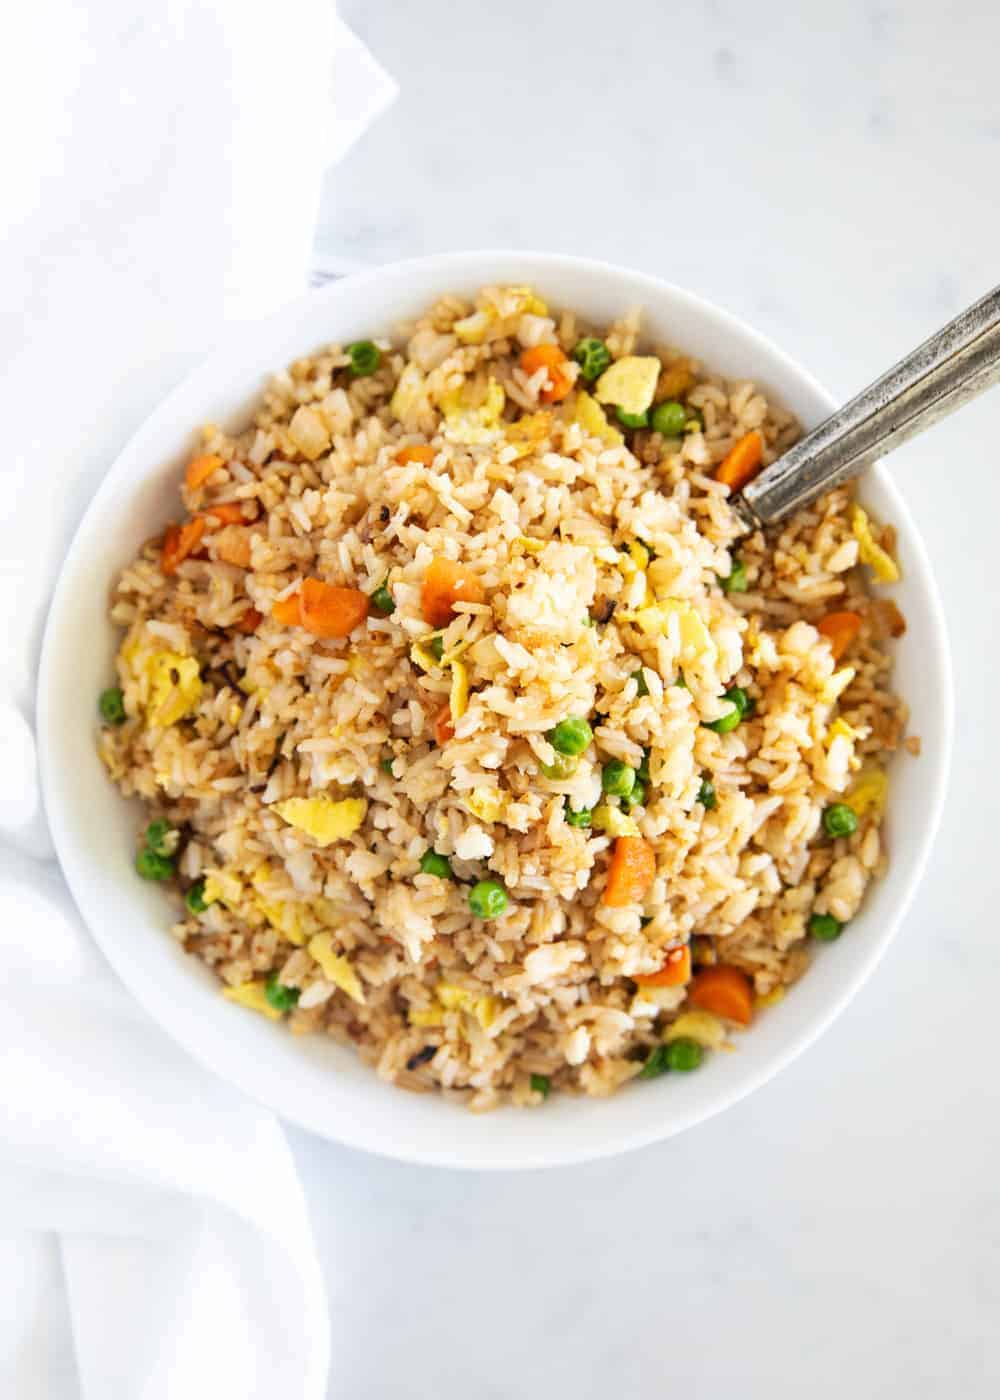 fried rice in white bowl with spoon